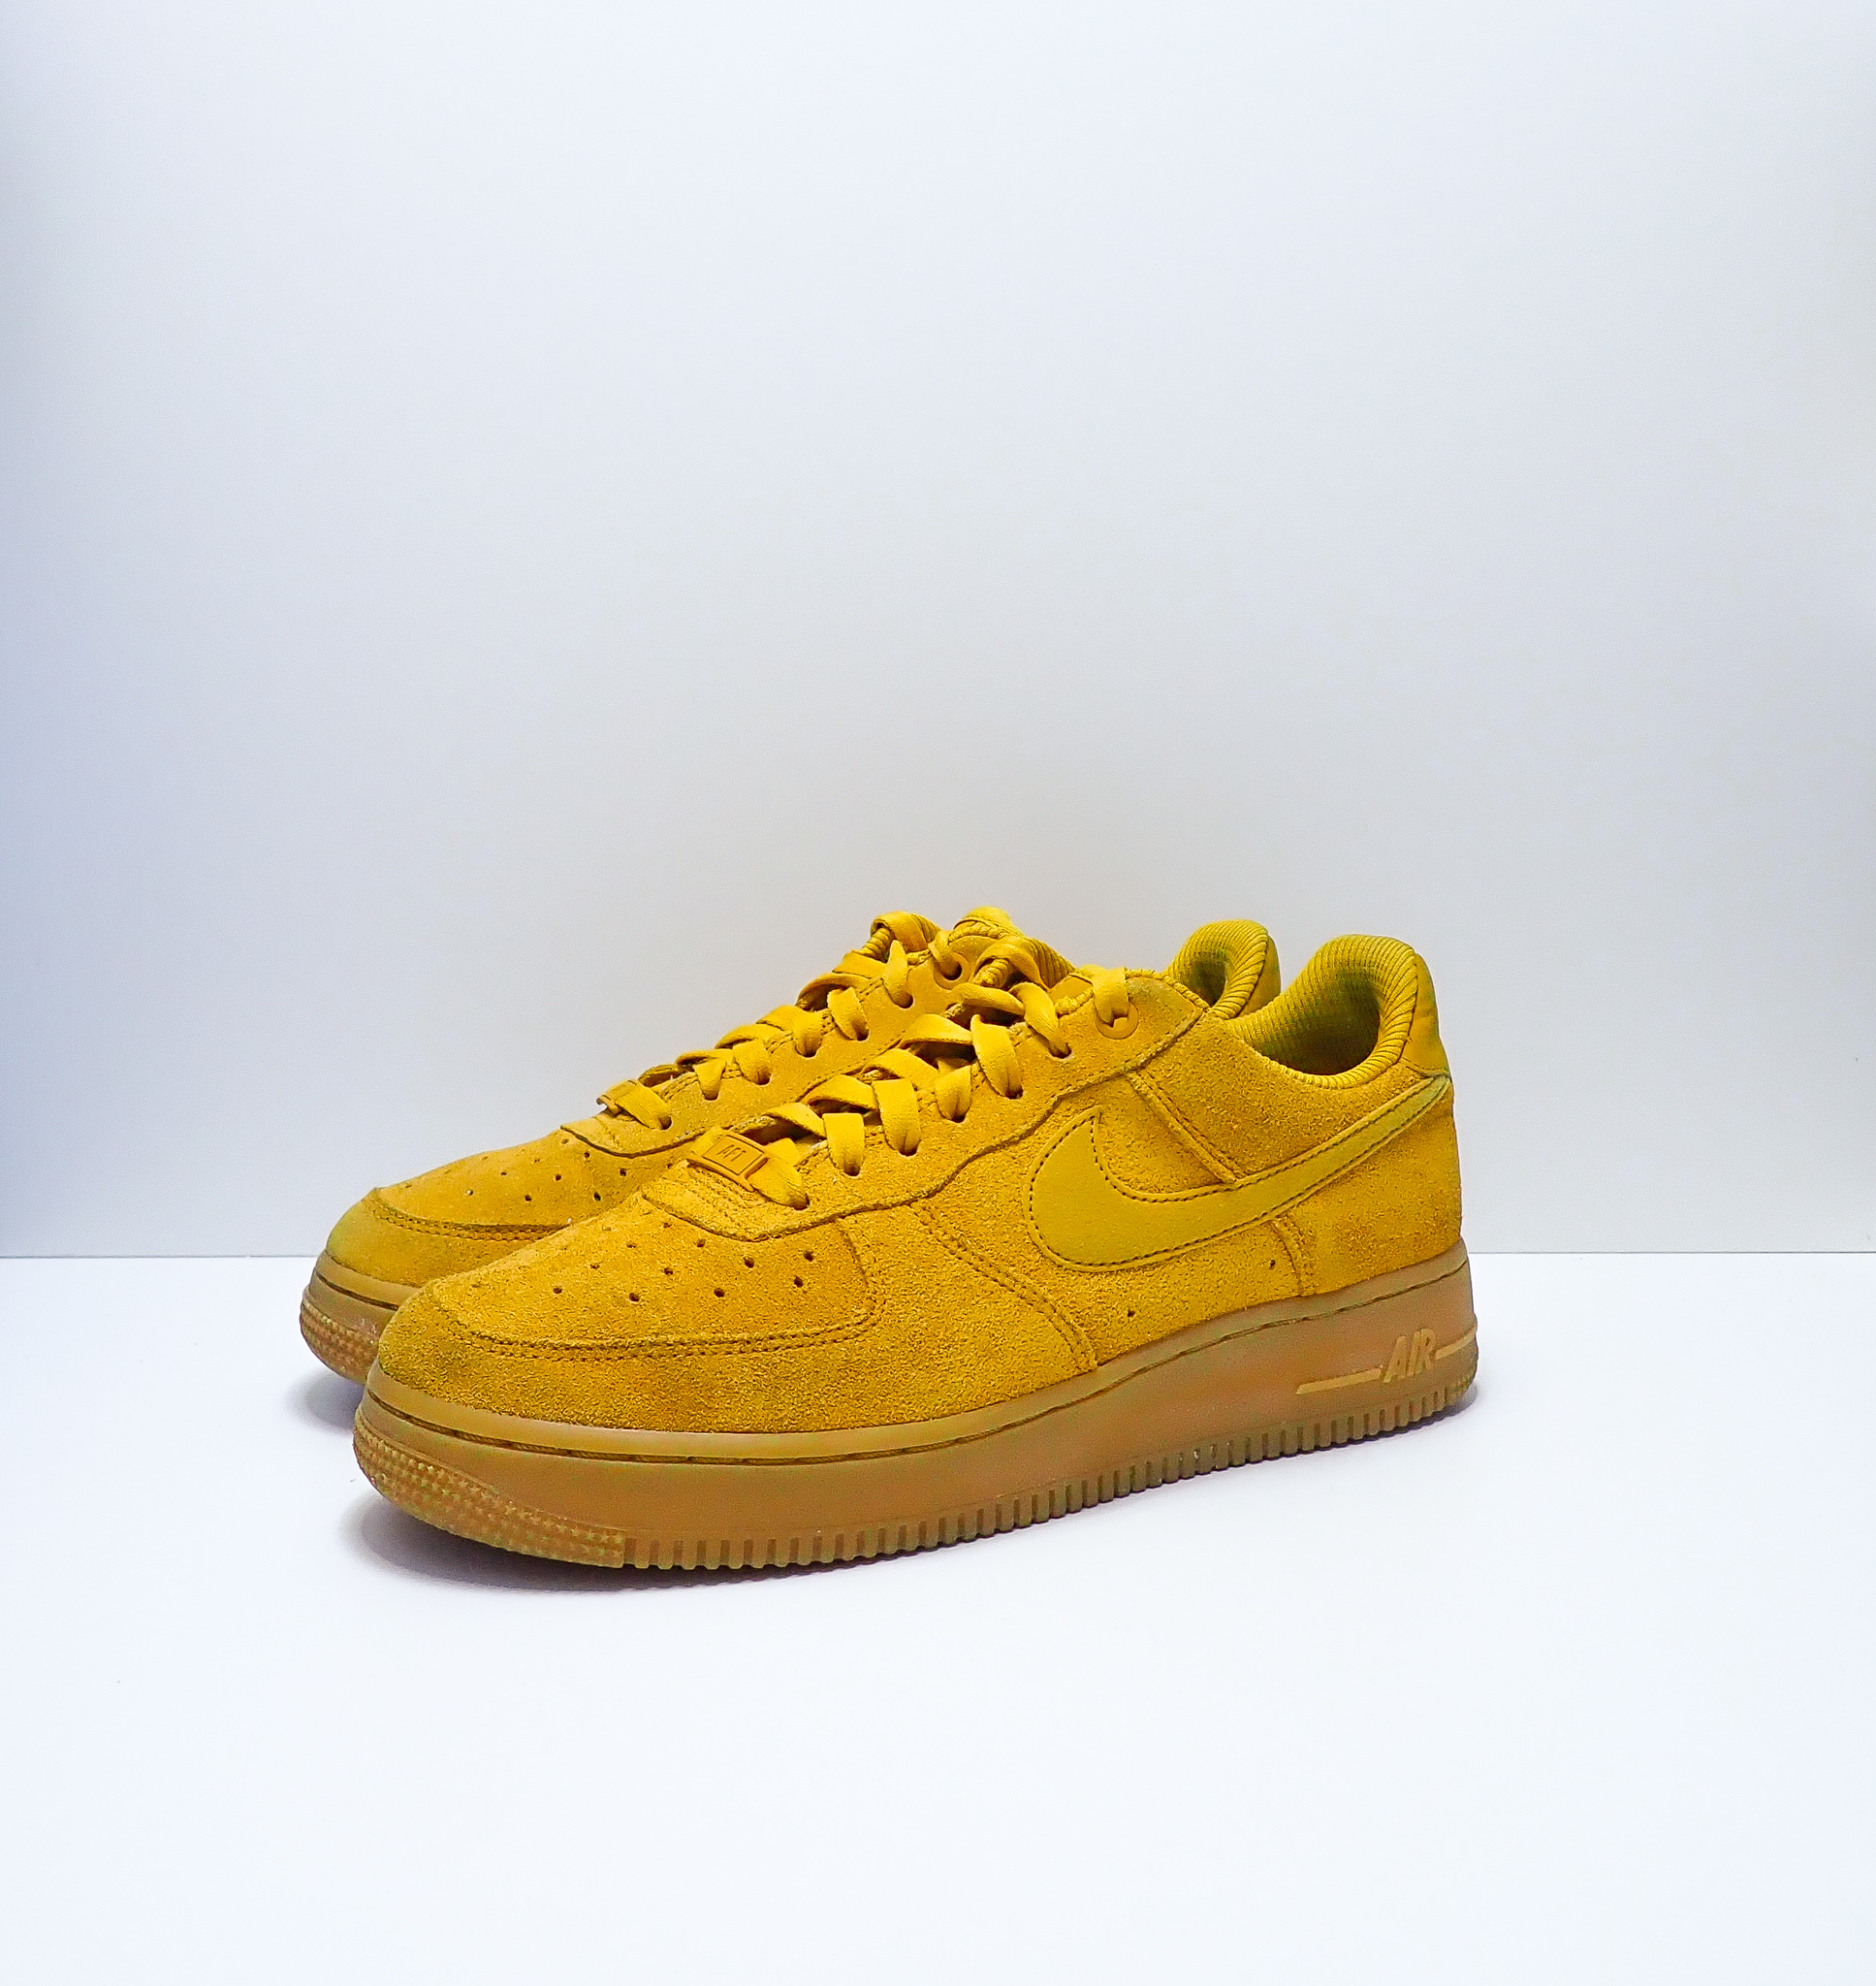 Nike Air Force 1 Low Mineral Yellow Gum (W)